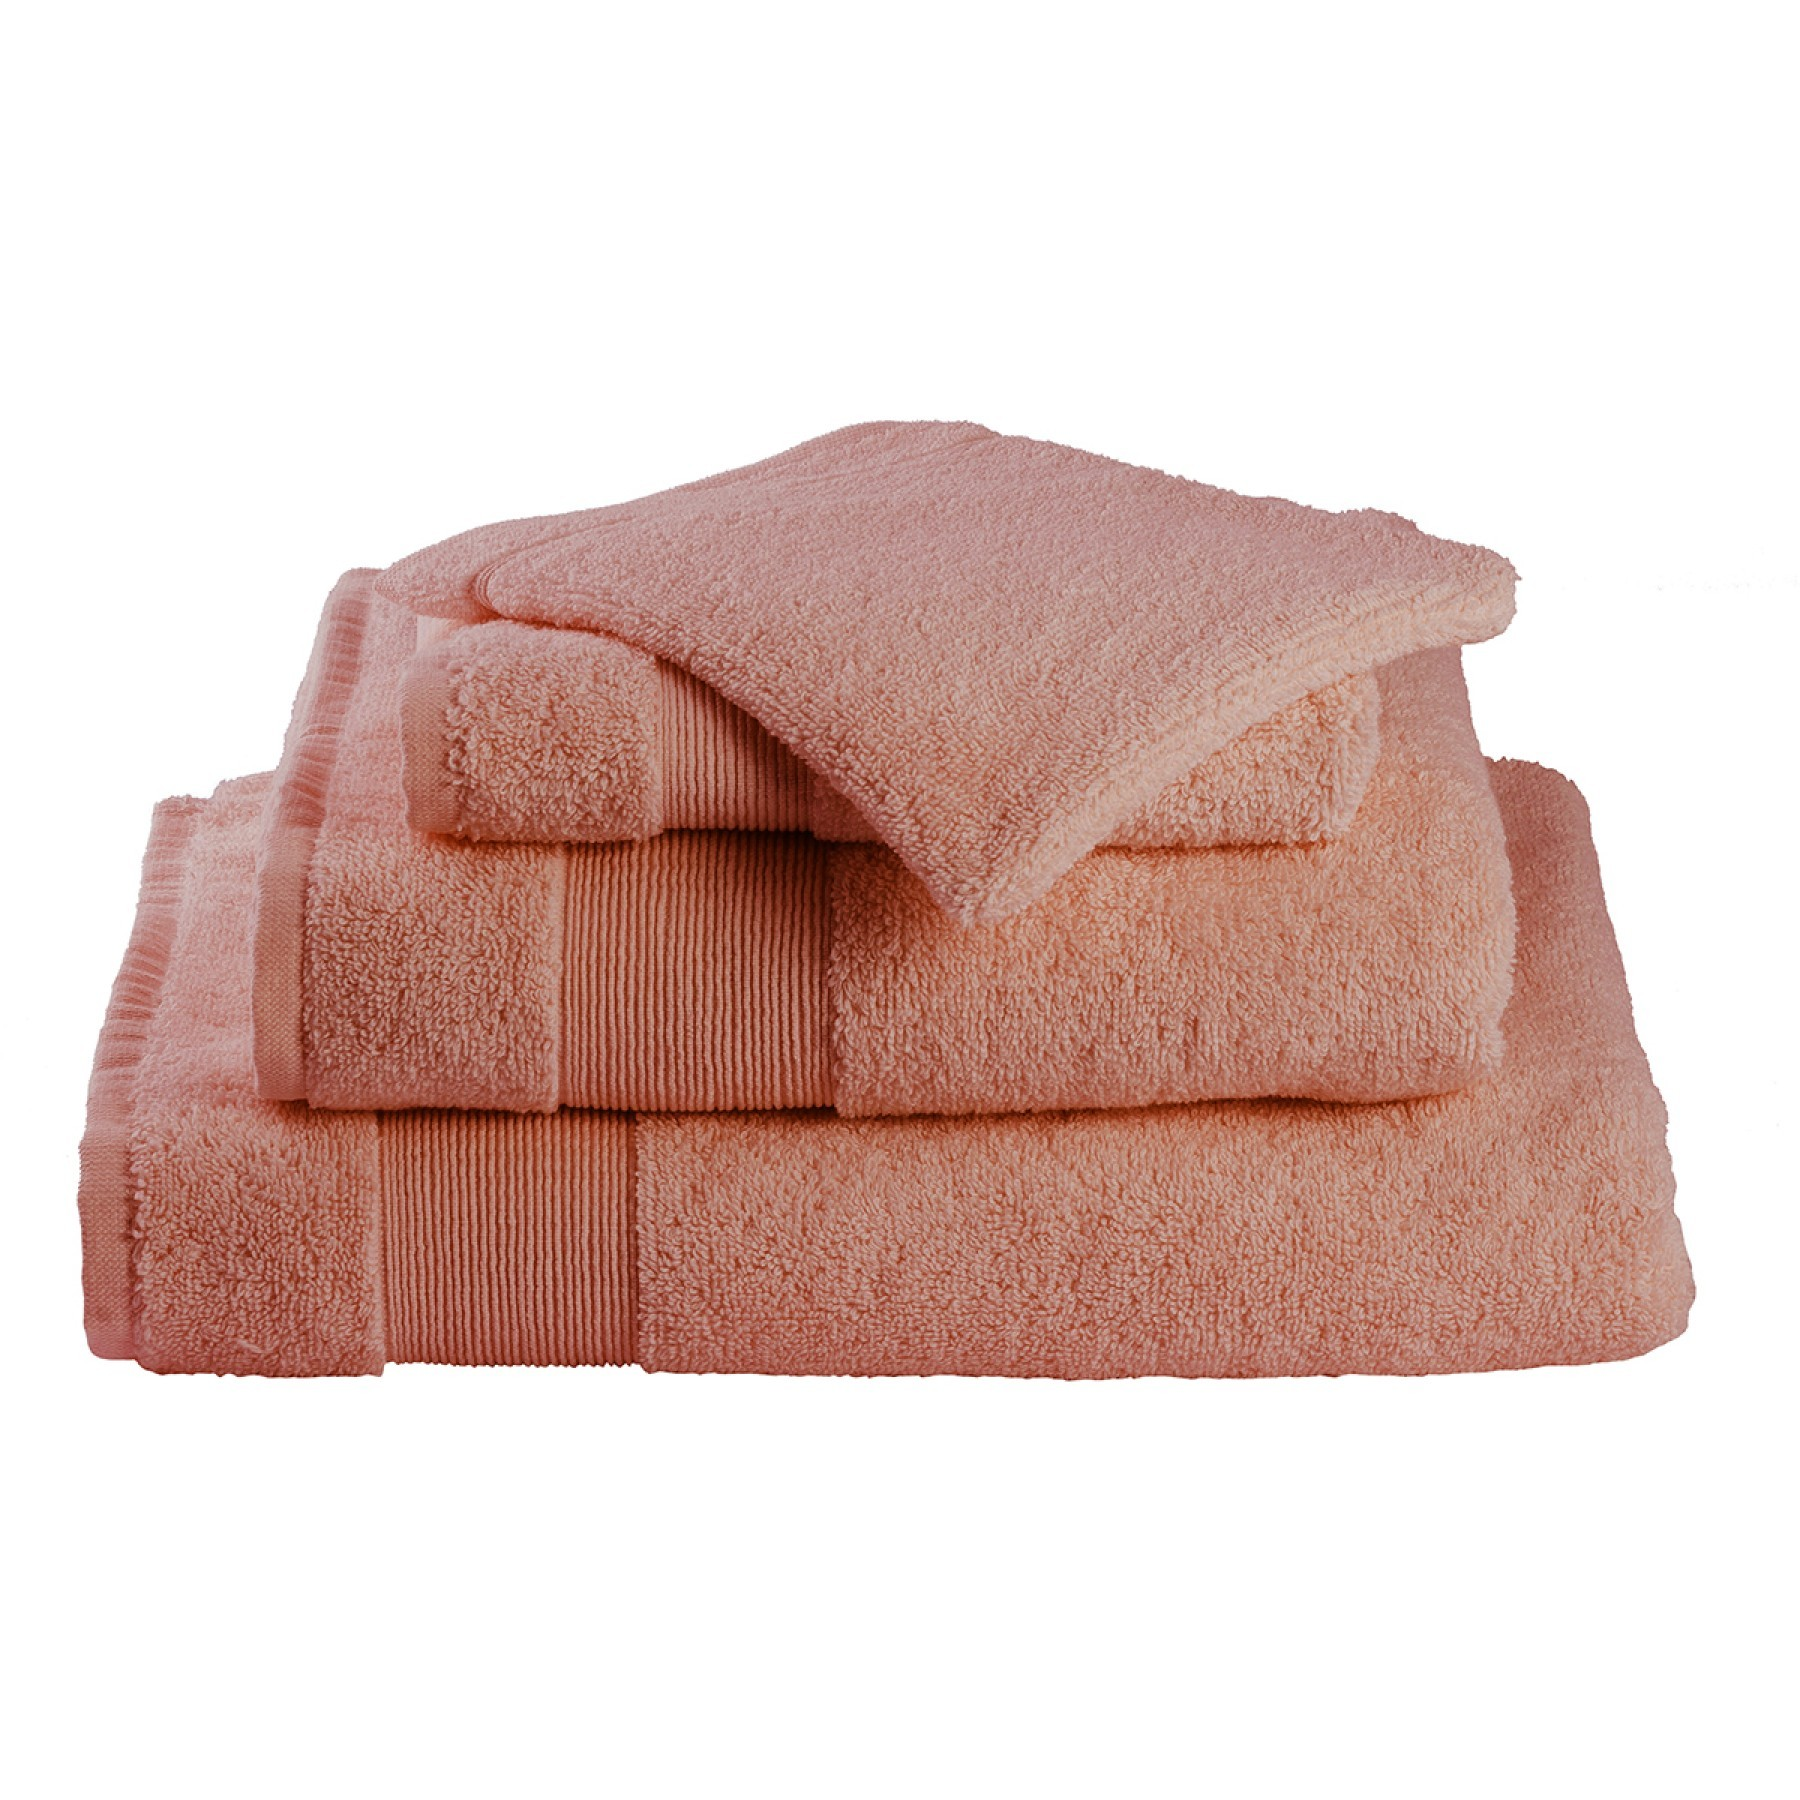 Livello Washand Home Collection Dusty Pink